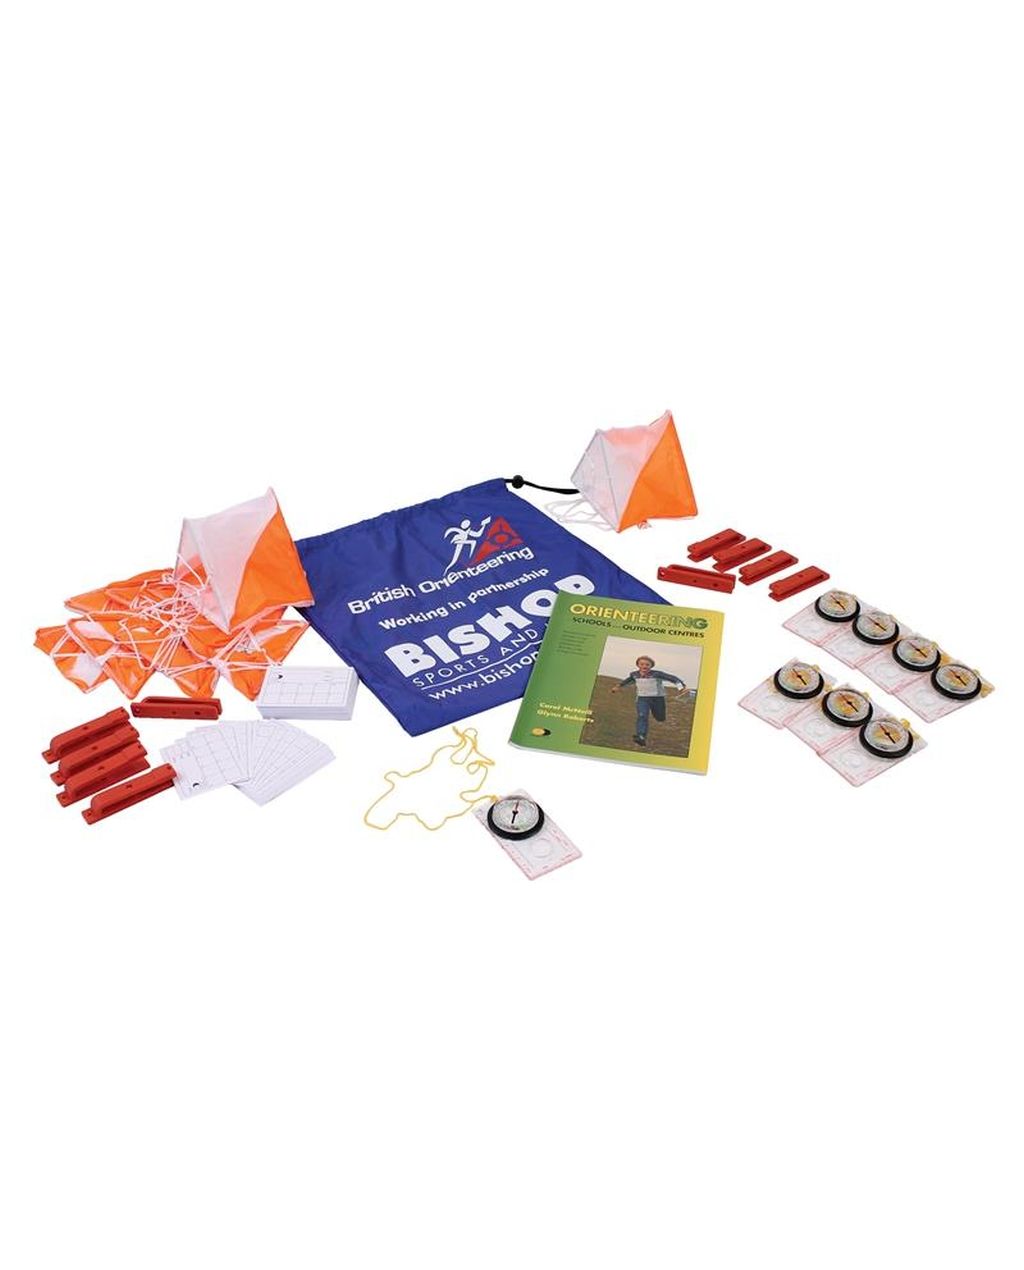 Orienteering kit w/o resource